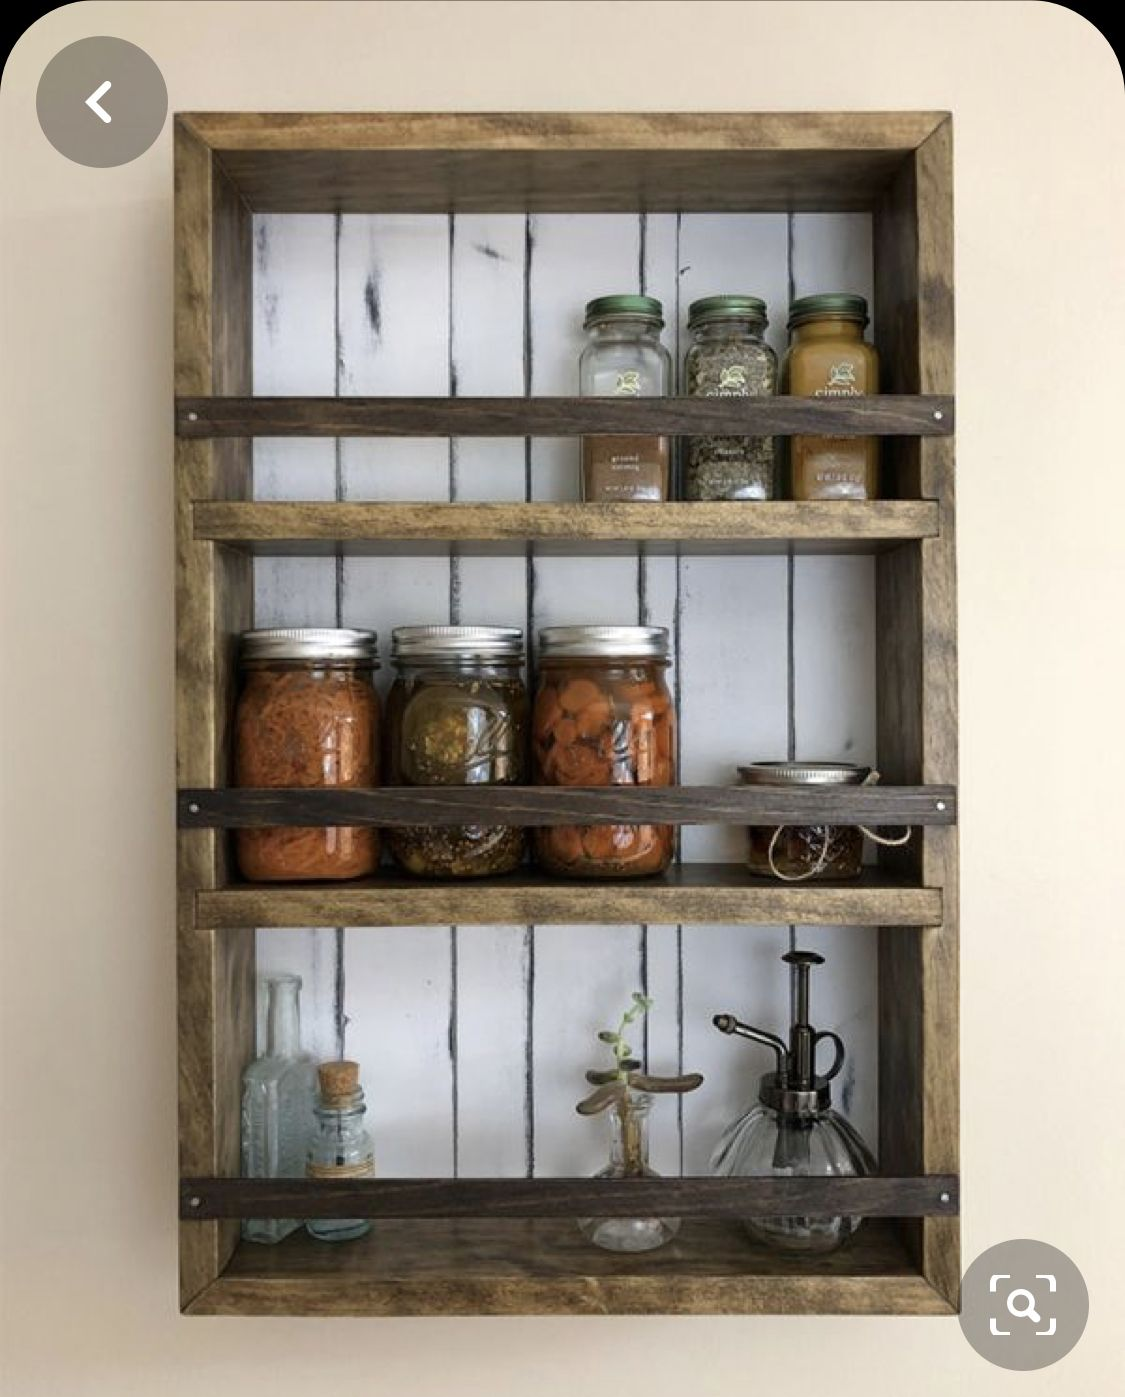 Wall Mounted Wooden Spice Rack Plans: Pin By Kirsten Veitch On Kitchen Spices In 2020